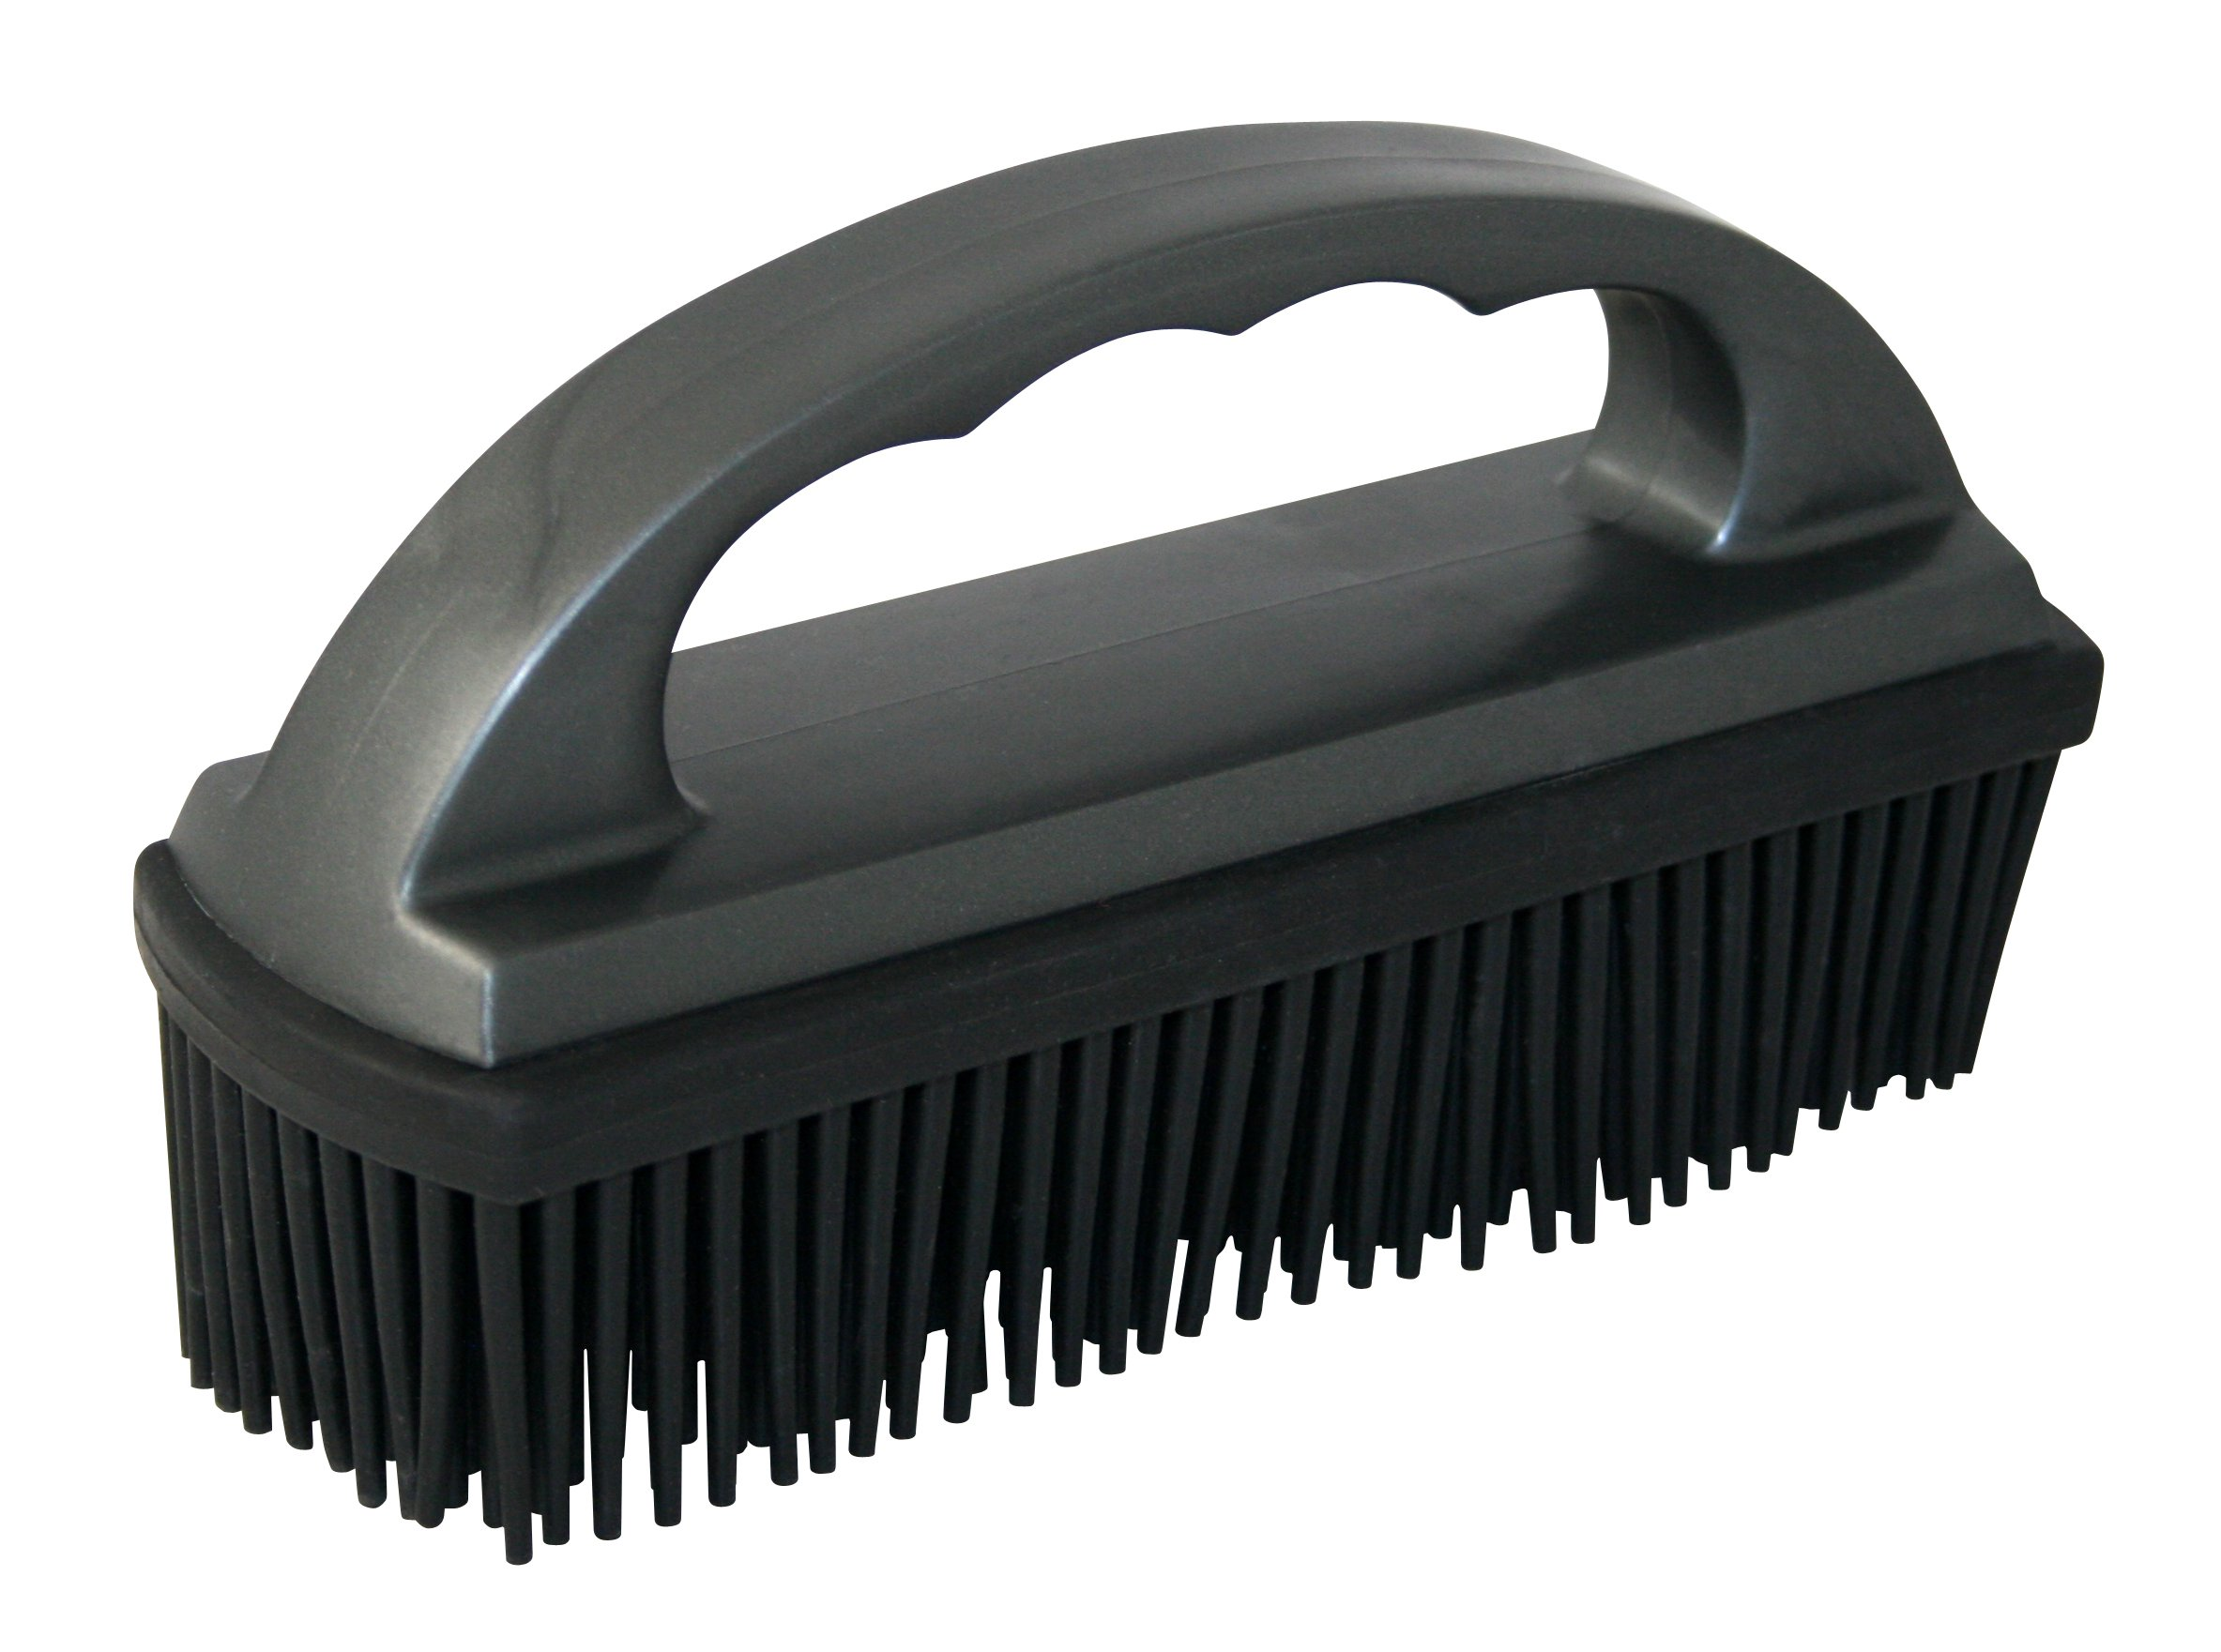 Carrand 93112 Lint and Hair Removal Brush, Single